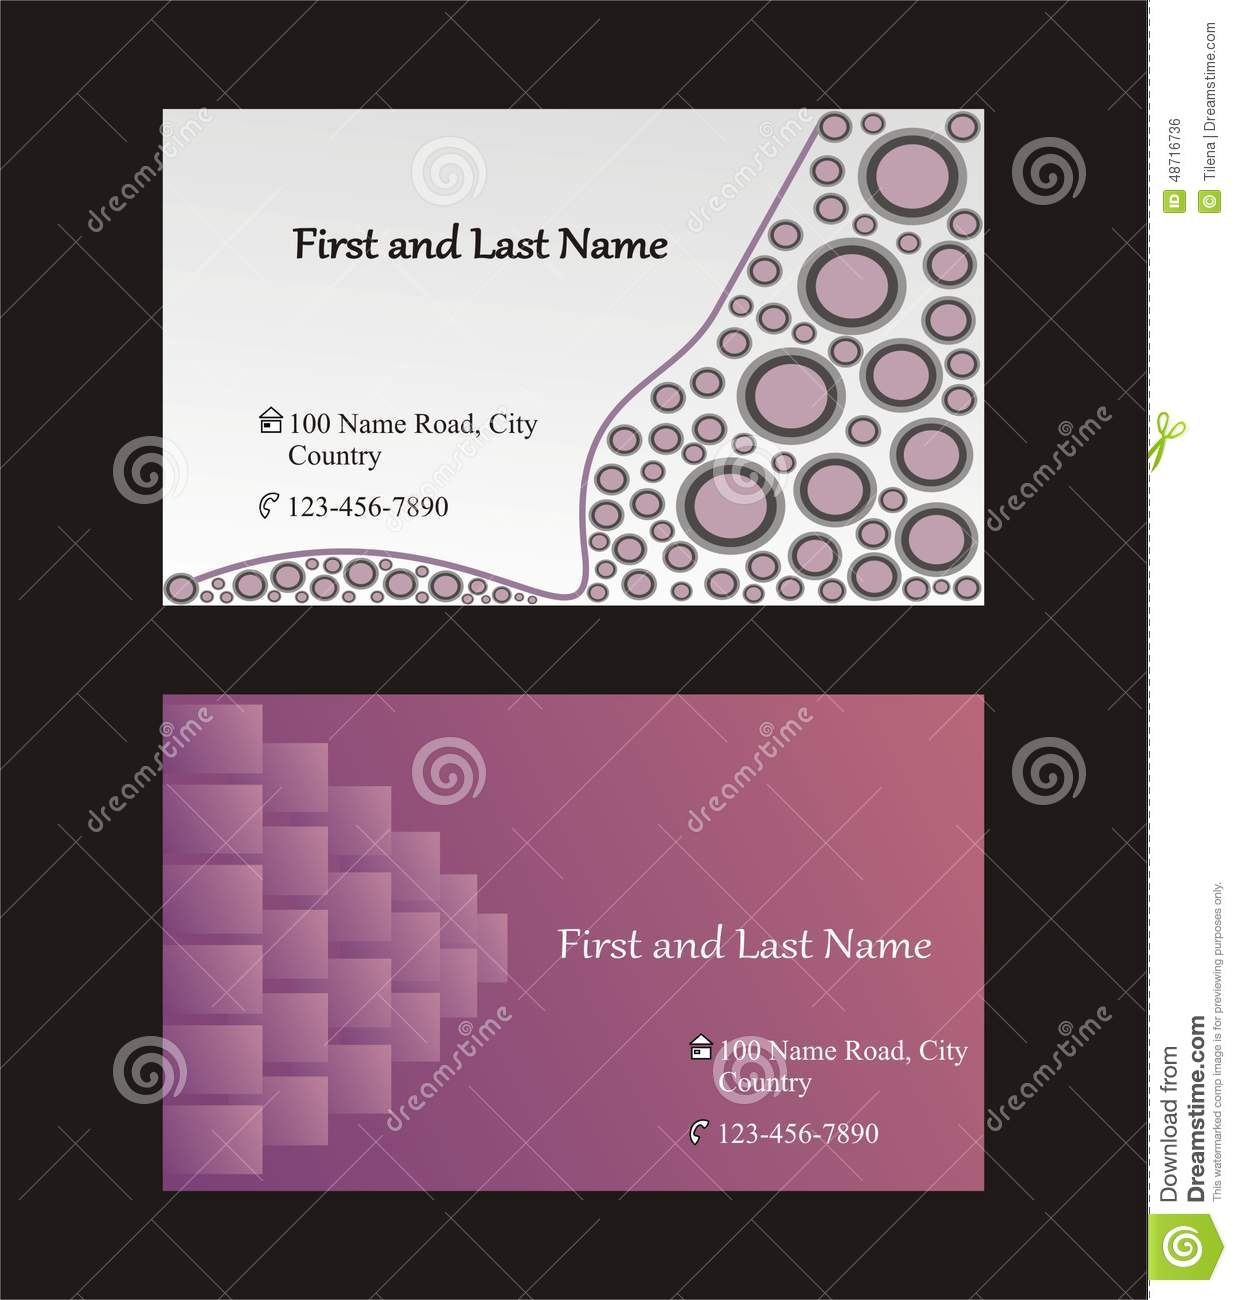 Single sided business cards template stock vector image for Single business card template